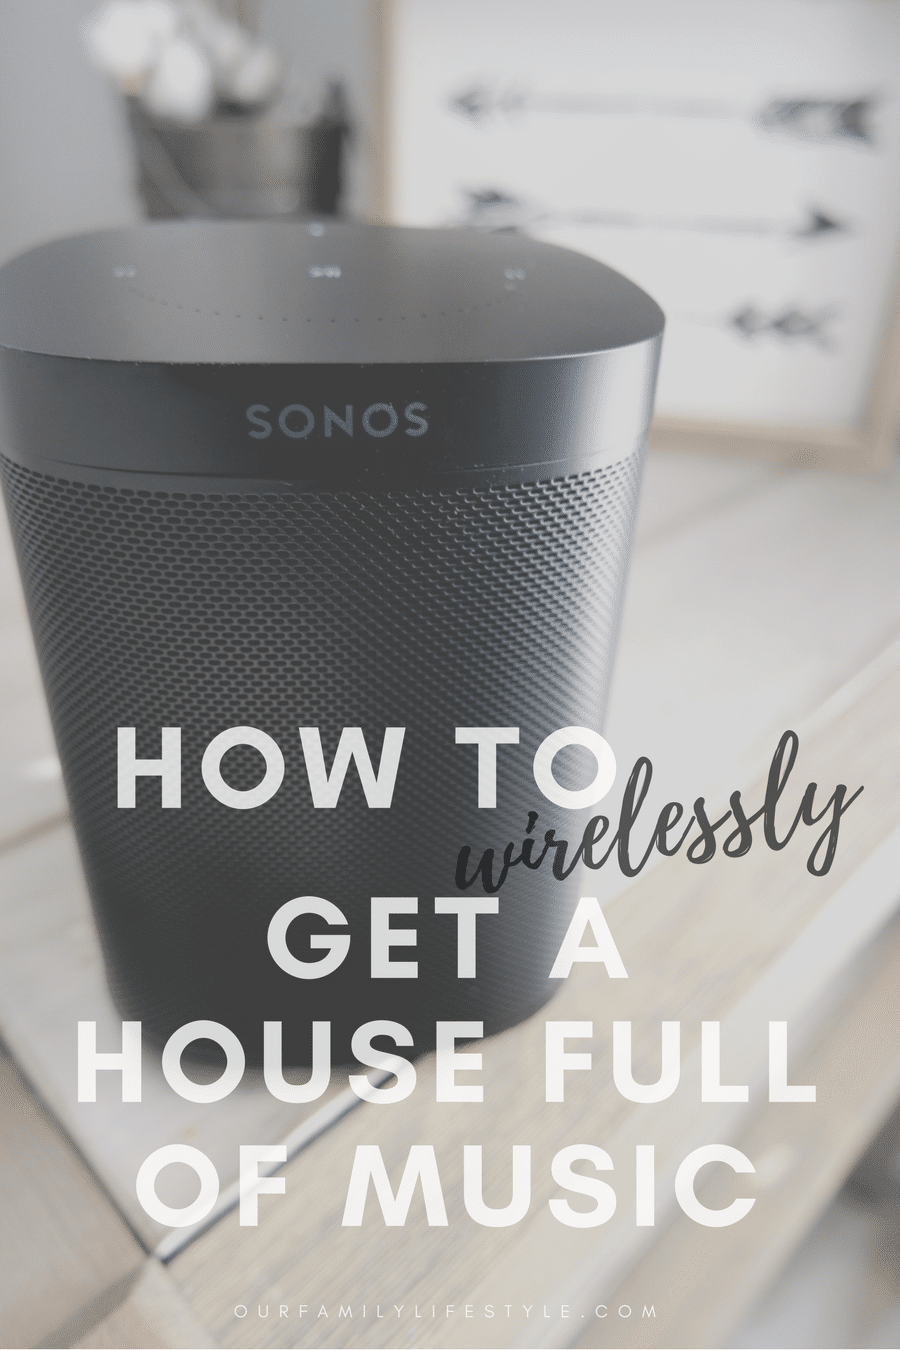 If you've been looking for a way to wirelessly get a house full of music, you can achieve it effortlessly with Sonos One available at Best Buy.